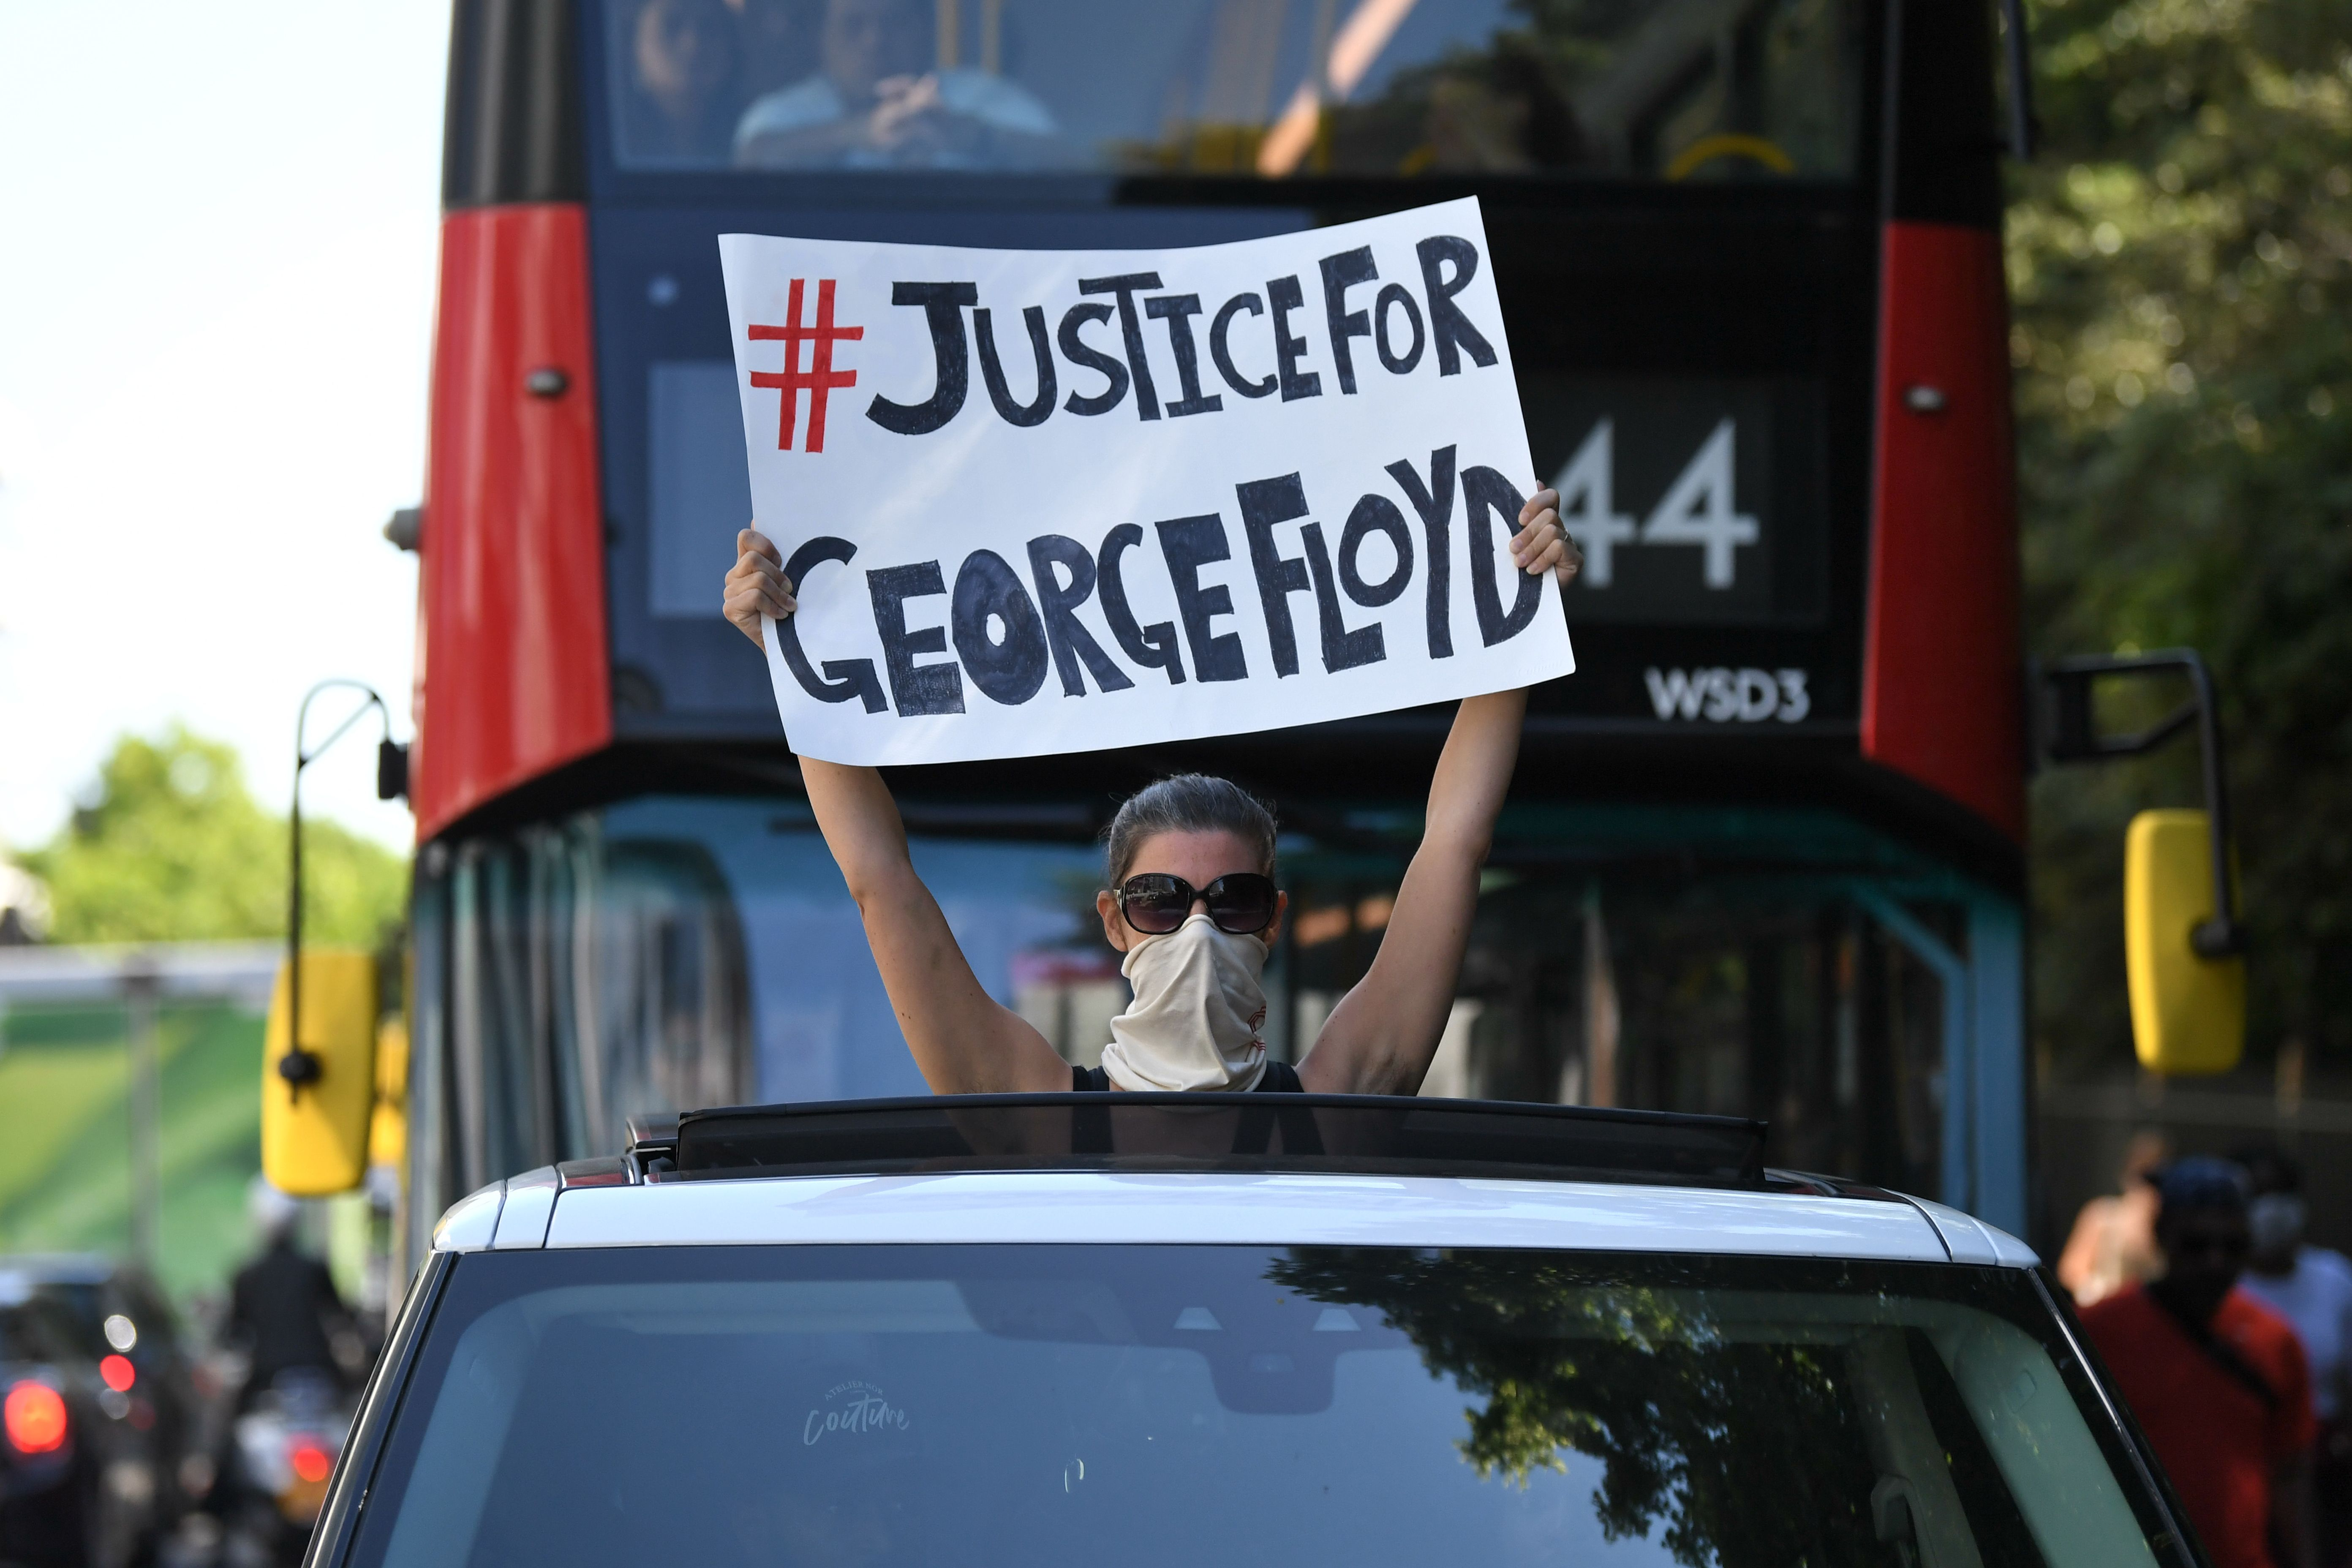 A woman holds a sign out of the sunroof of a car in central London on May 31, 2020 calling for justice following the death of George Floyd, an unarmed black man who died after a police officer knelt on his neck for nearly nine minutes during an arrest in Minneapolis, USA. - Hundreds gathered in central London and marched to teh US Embassy to protest the death of an unarmed black man in Minneapolis while in police custody that has sparked days of unrest in the US city and beyond. (Photo by DANIEL LEAL-OLIVAS / AFP) (Photo by DANIEL LEAL-OLIVAS/AFP via Getty Images)